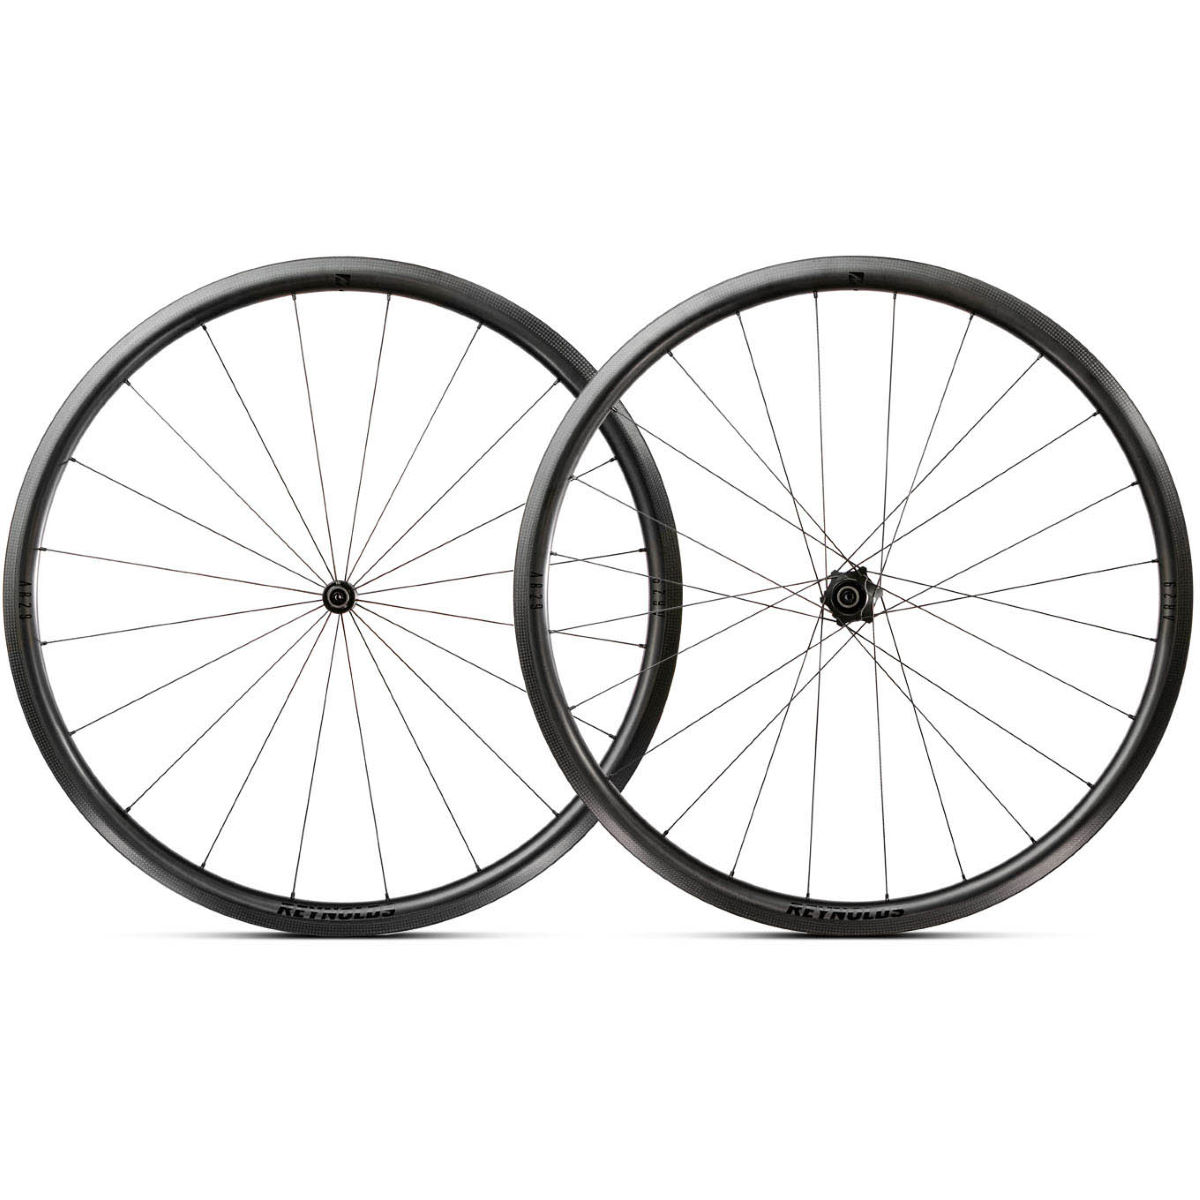 Reynolds Reynolds AR 29 Carbon Road Wheelset   Wheel Sets